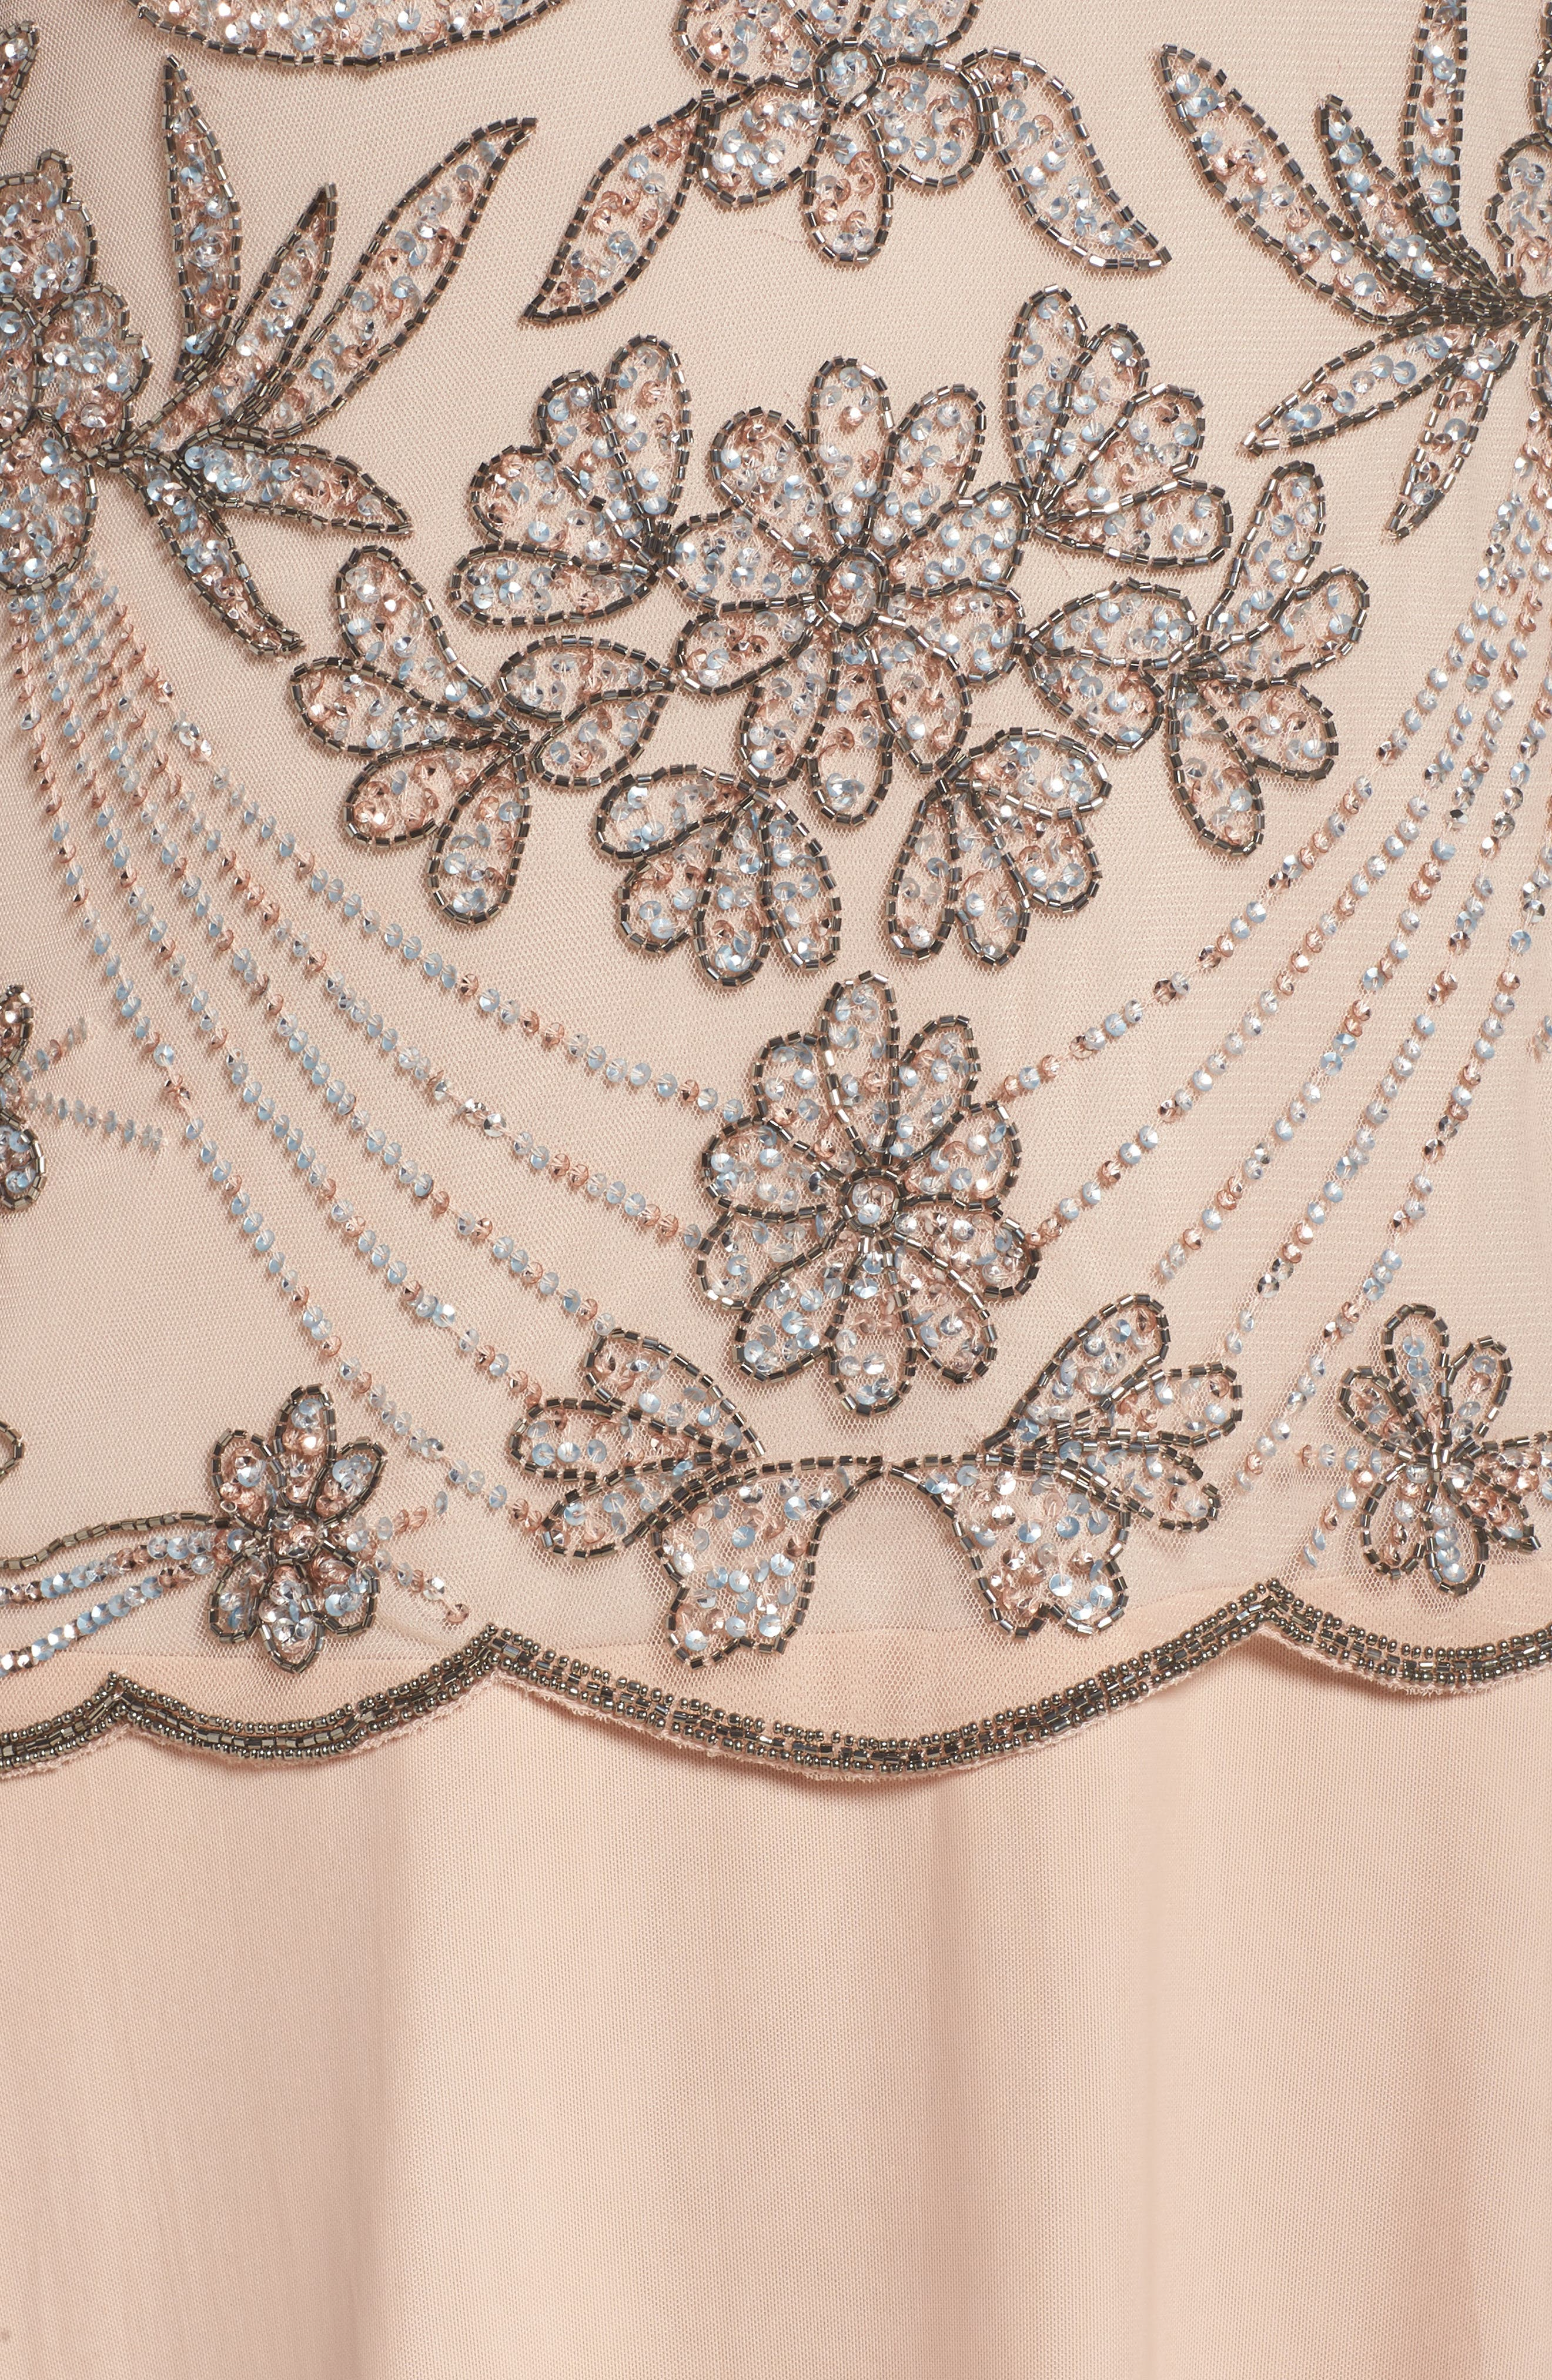 Embellished Illusion Bodice Gown,                             Alternate thumbnail 5, color,                             Blush